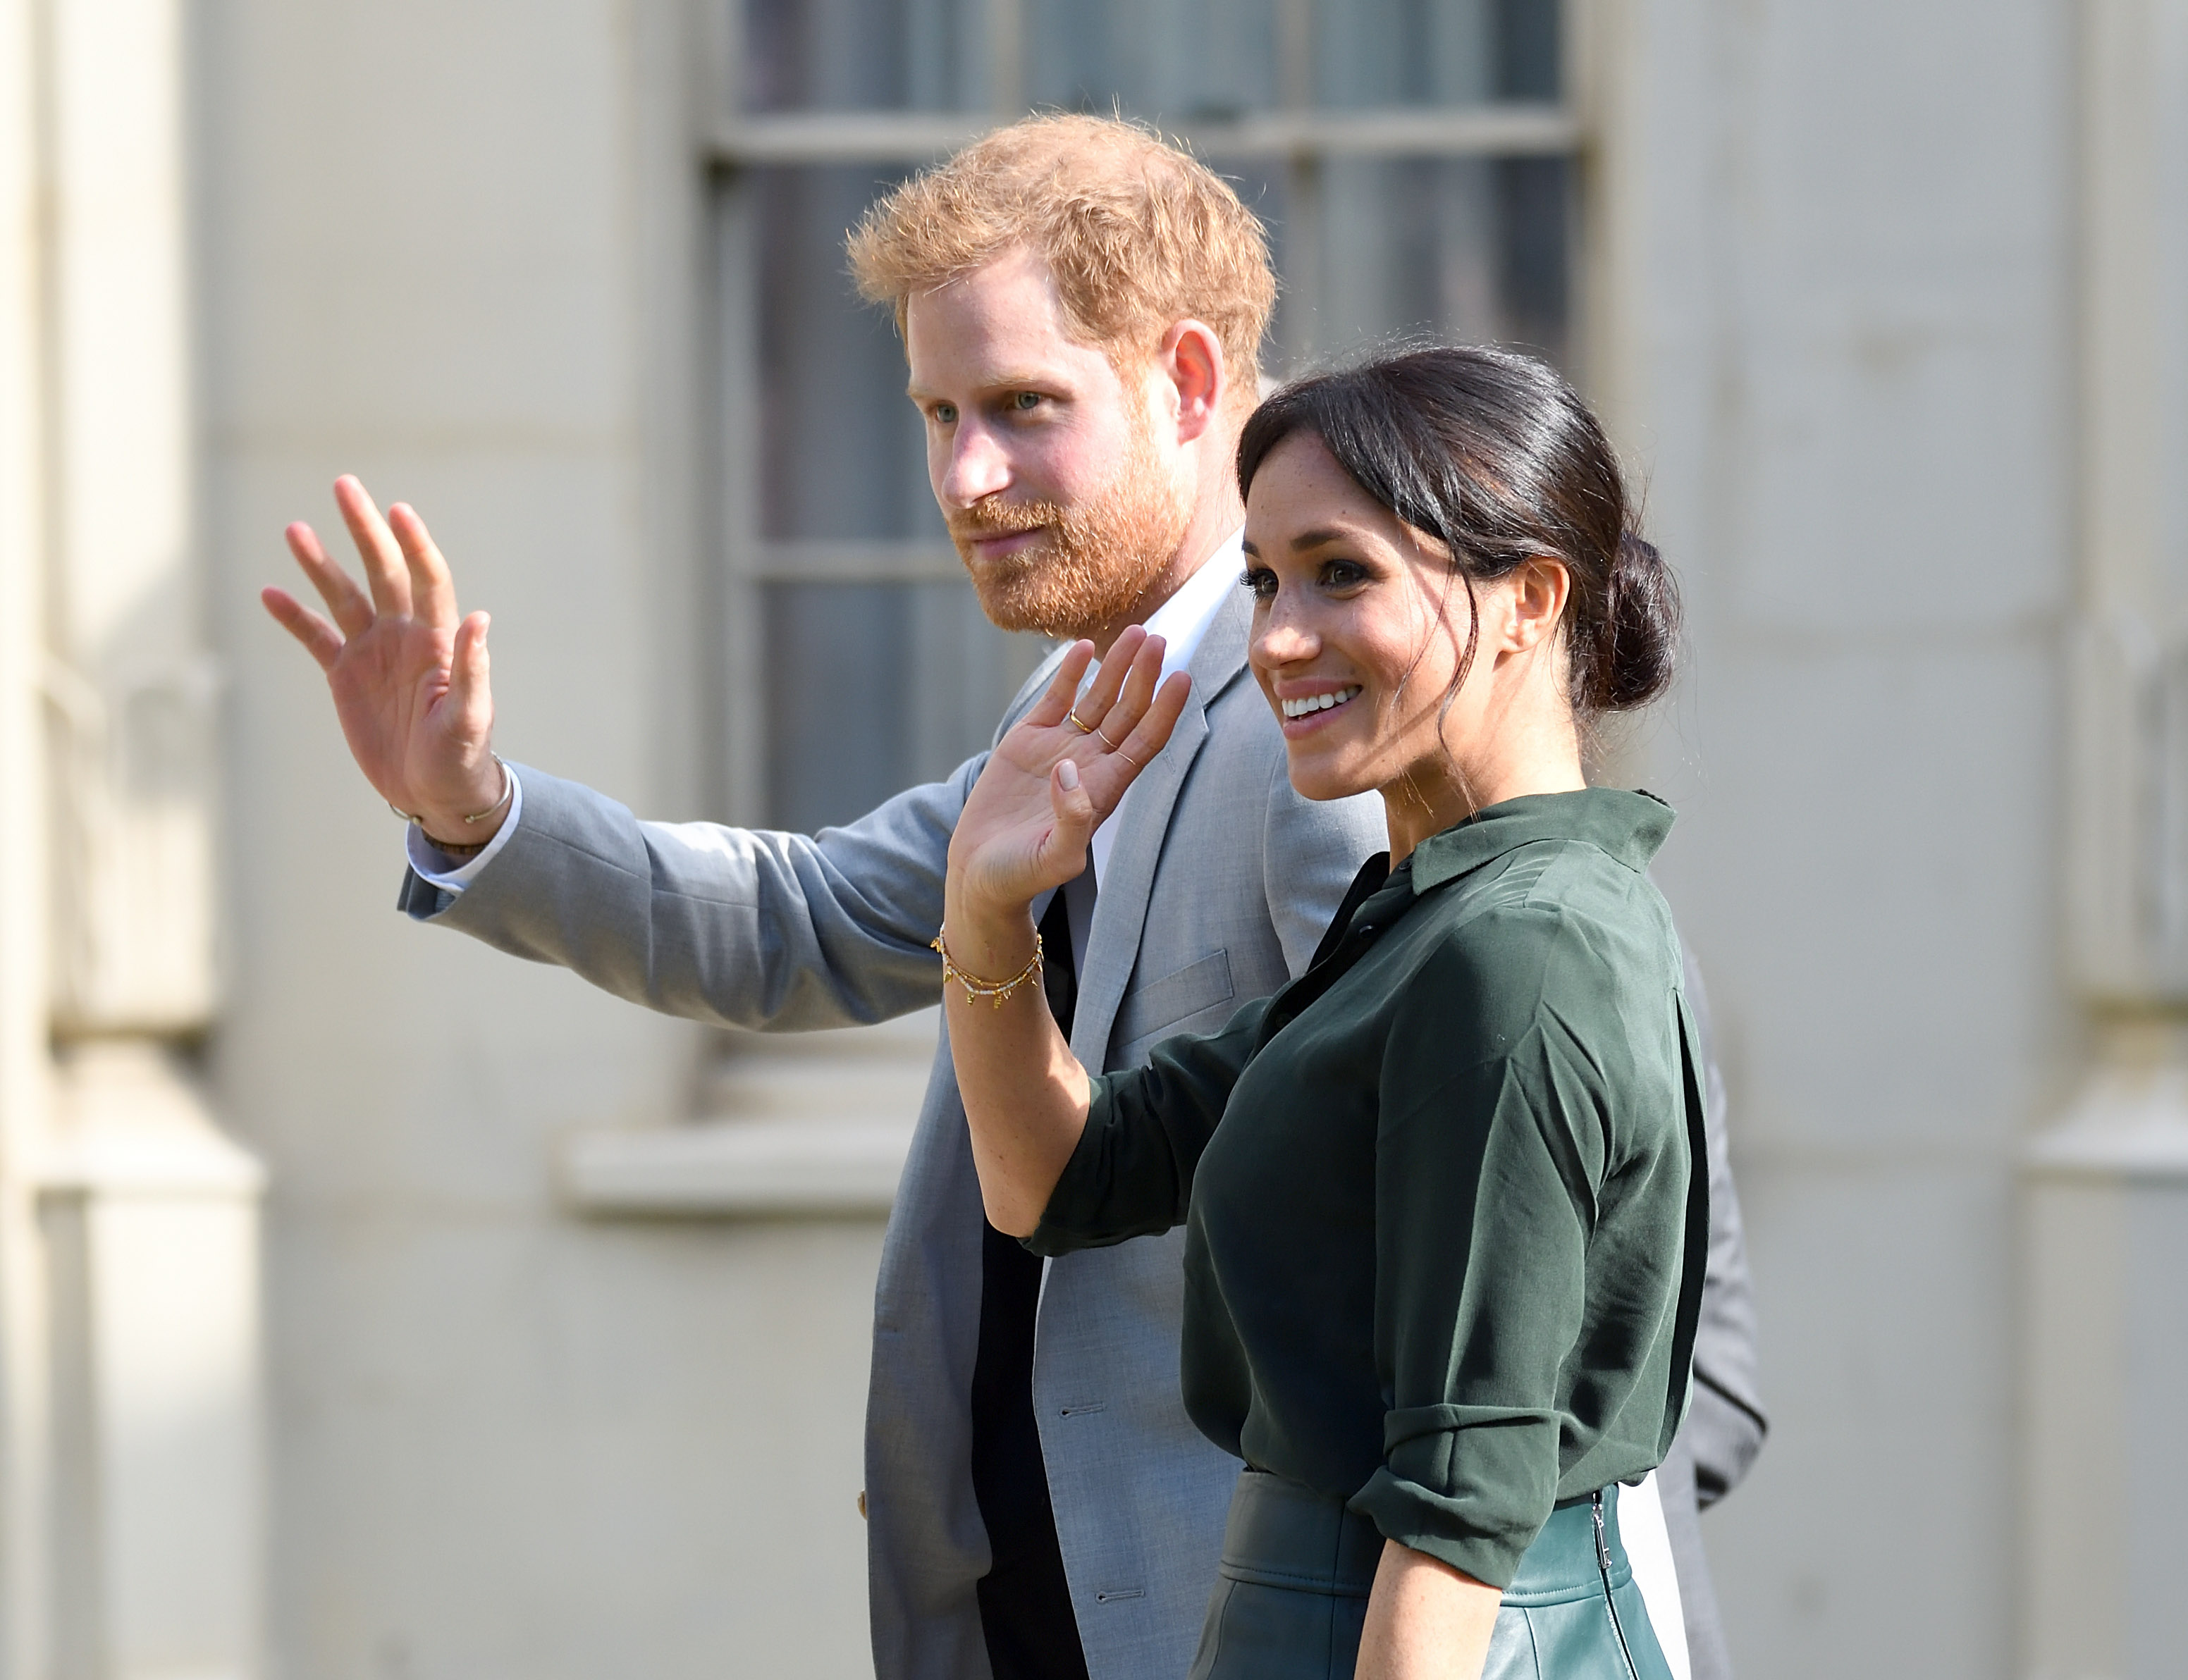 Meghan, Duchess of Sussex and Prince Harry, Duke of Sussex at the Royal Pavilion during an official visit to Sussex on October 3, 2018 in Brighton, United Kingdom.